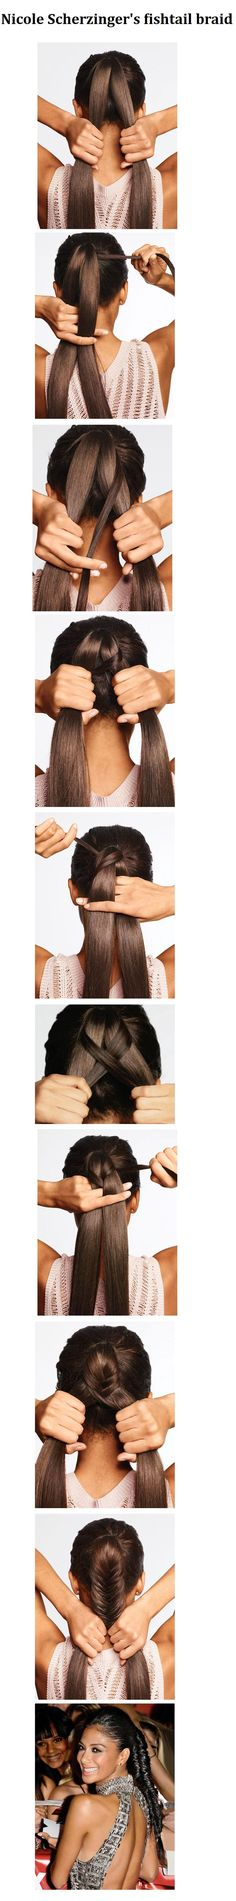 Nicole Scherzinger's fishtail braid step by step